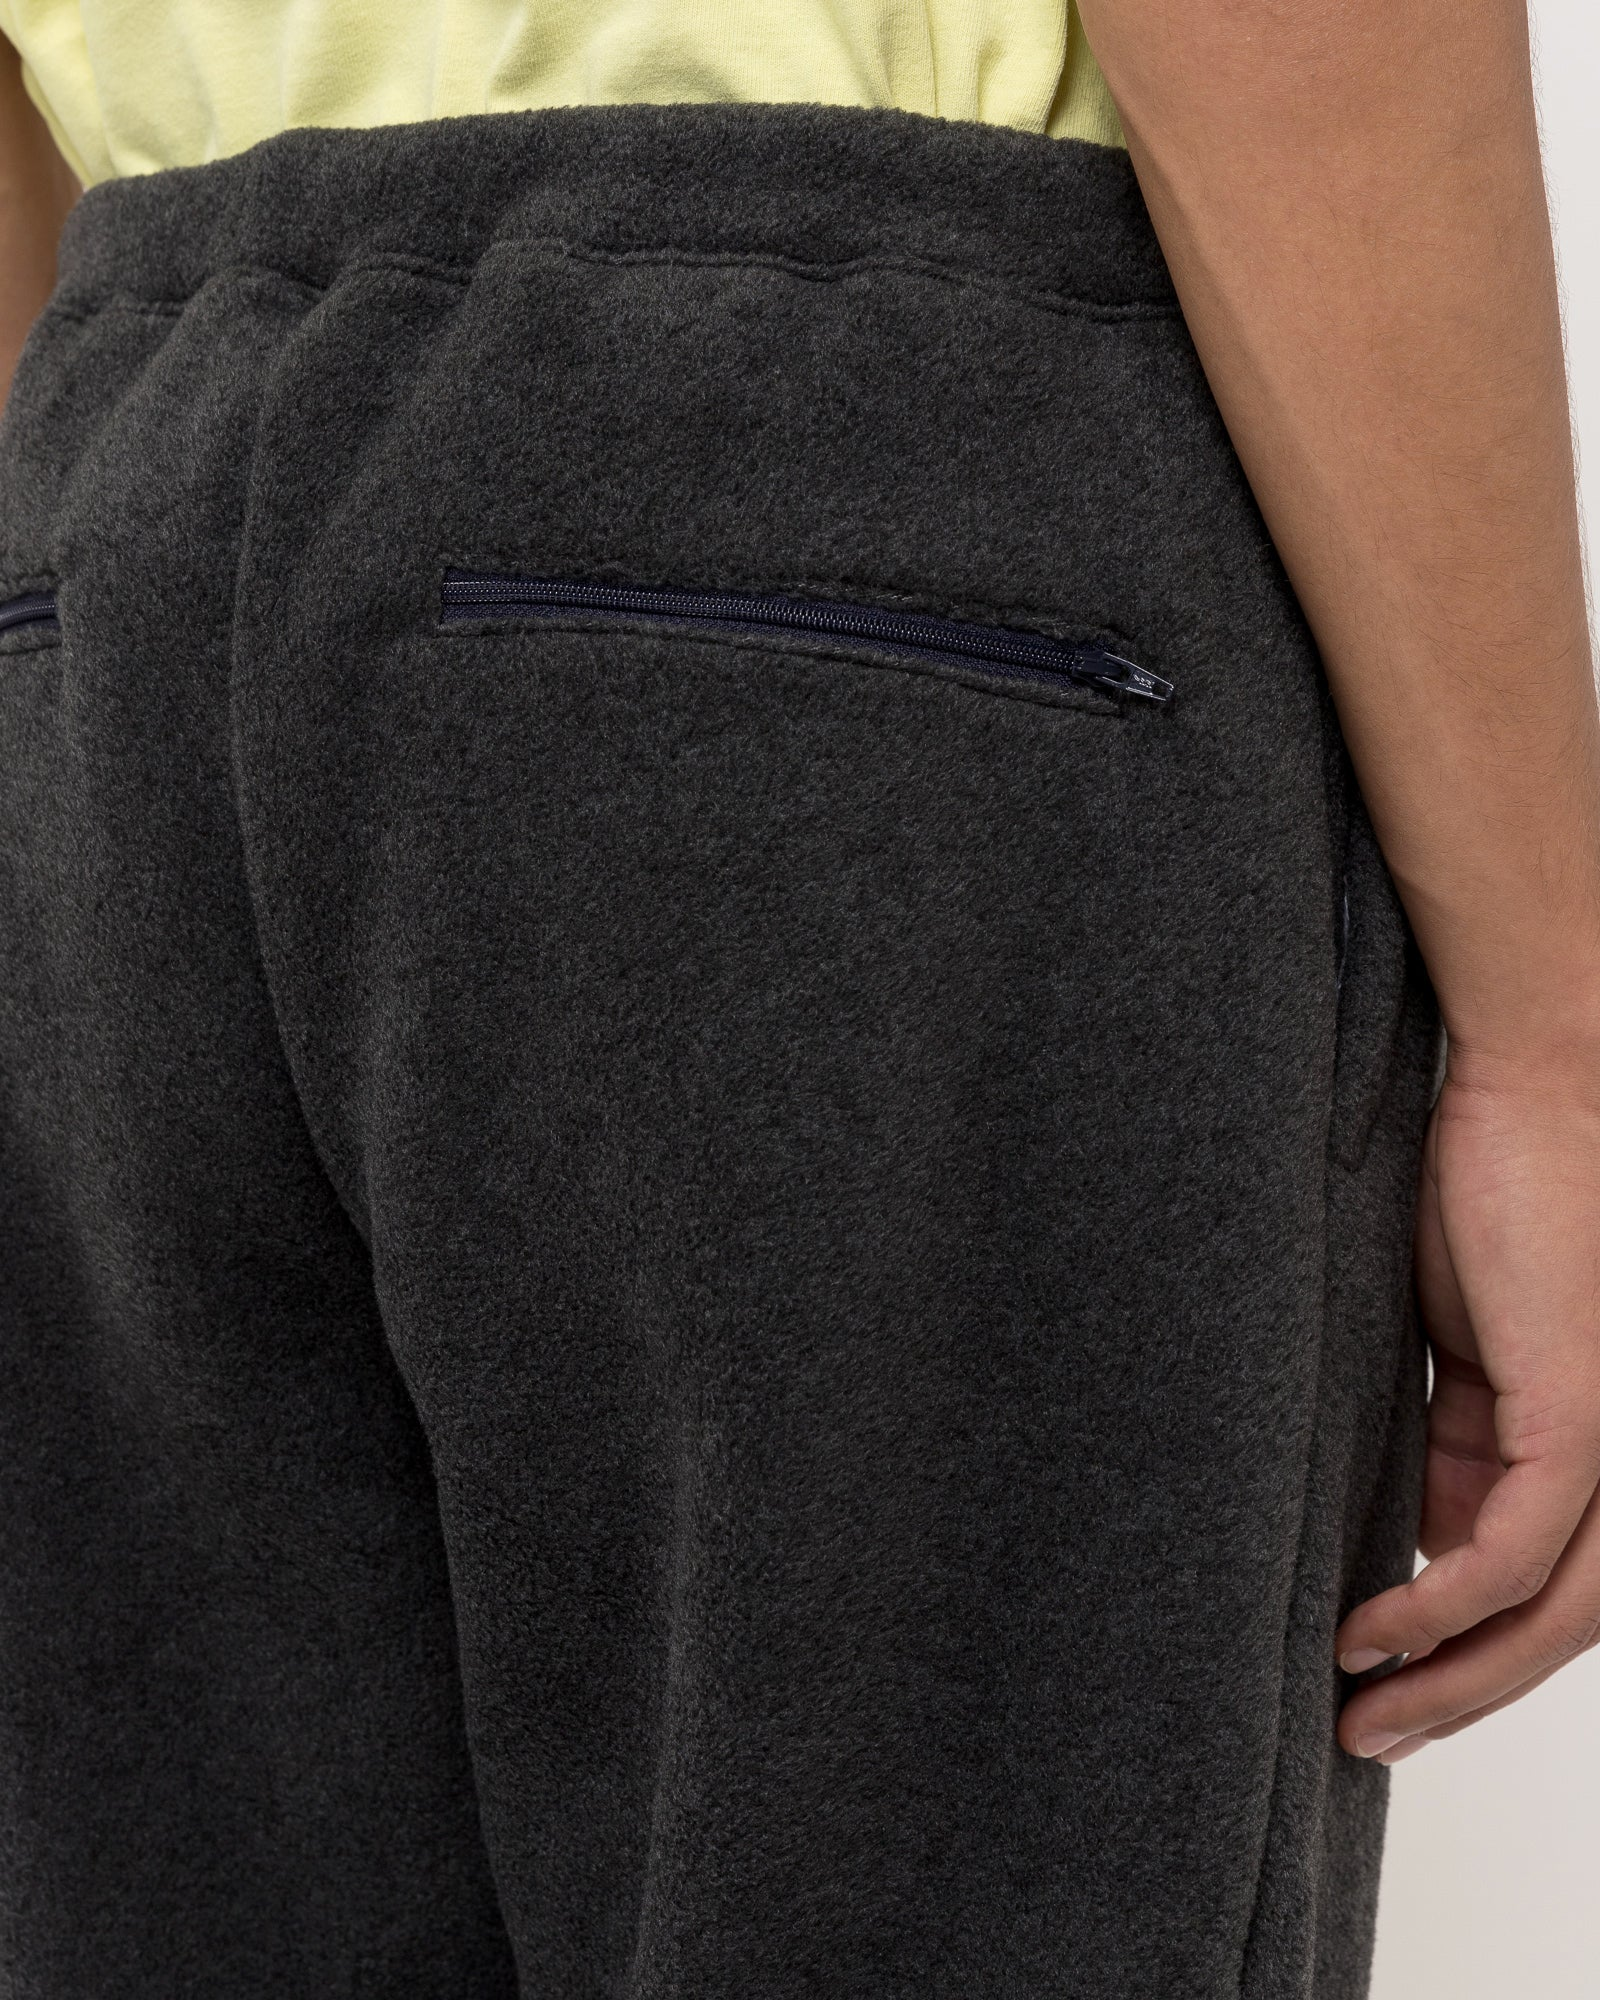 Cornershop Sweatpants in Charcoal